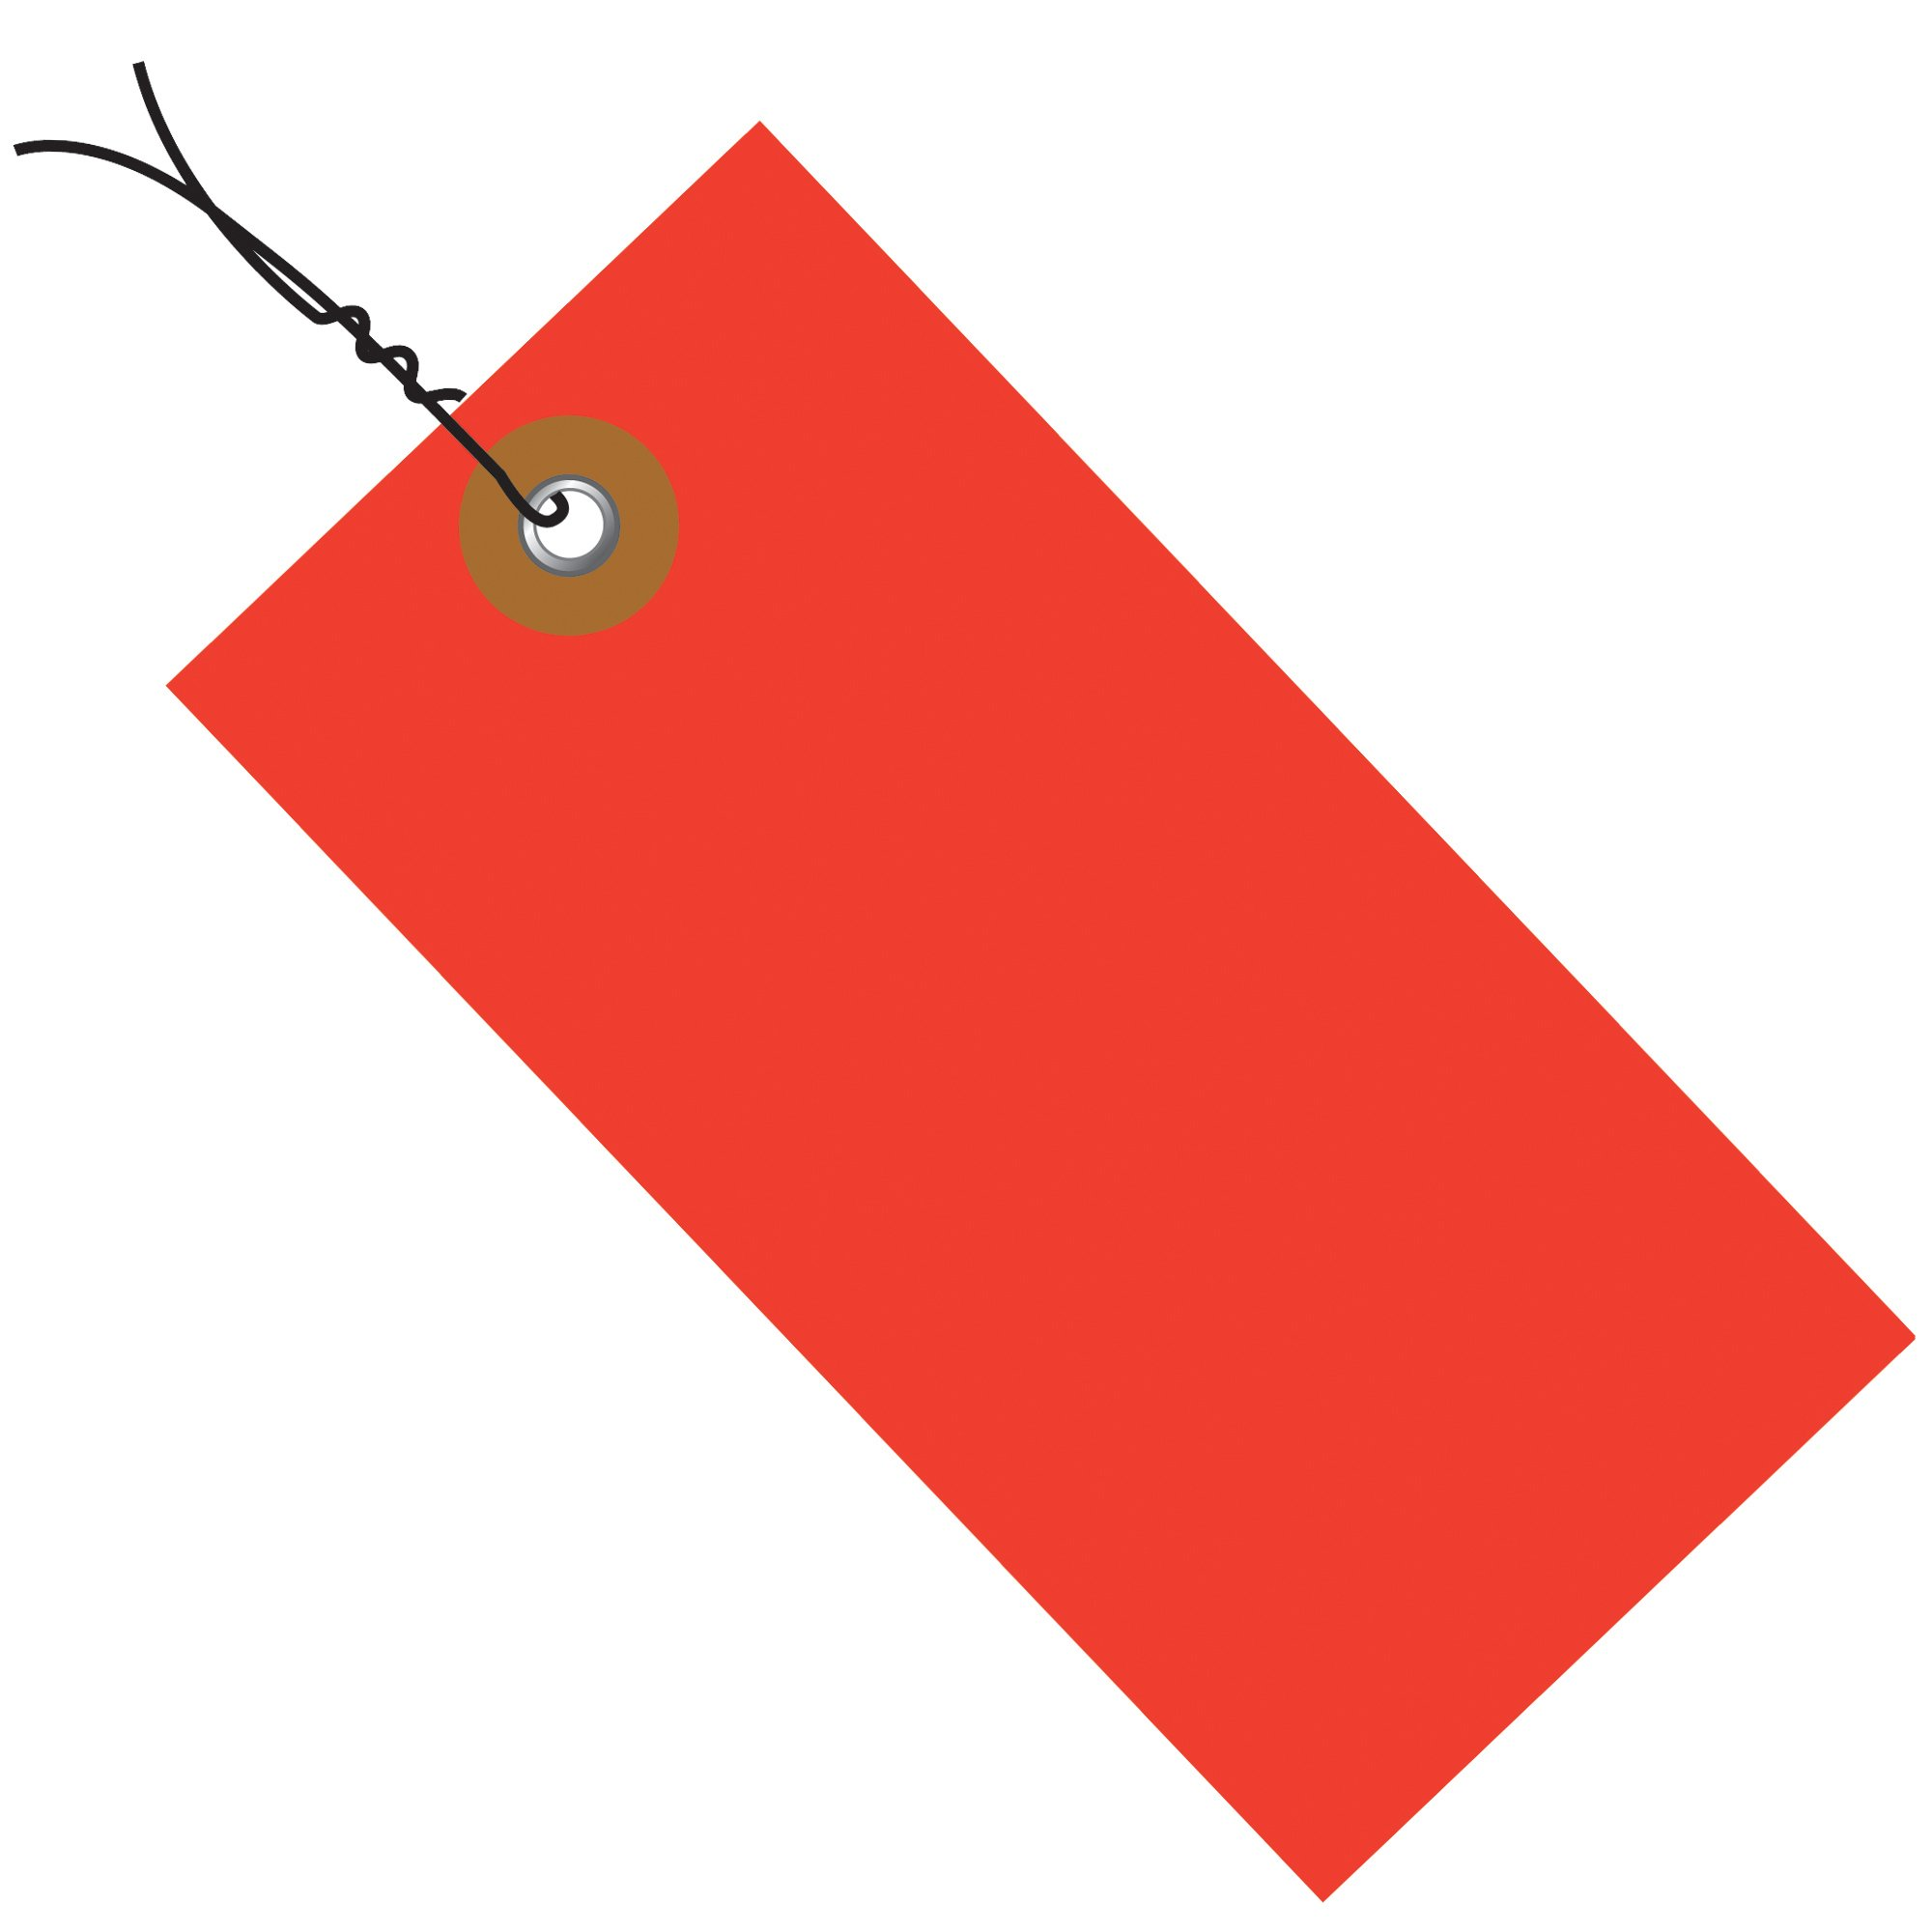 Tyvek G14023D Empty-Eyelet Pre-Wired Shipping Blank Tag, Spunbonded Olefin, 3-1/4'' Height x 1-5/8'' Width, Red (Case of 100)